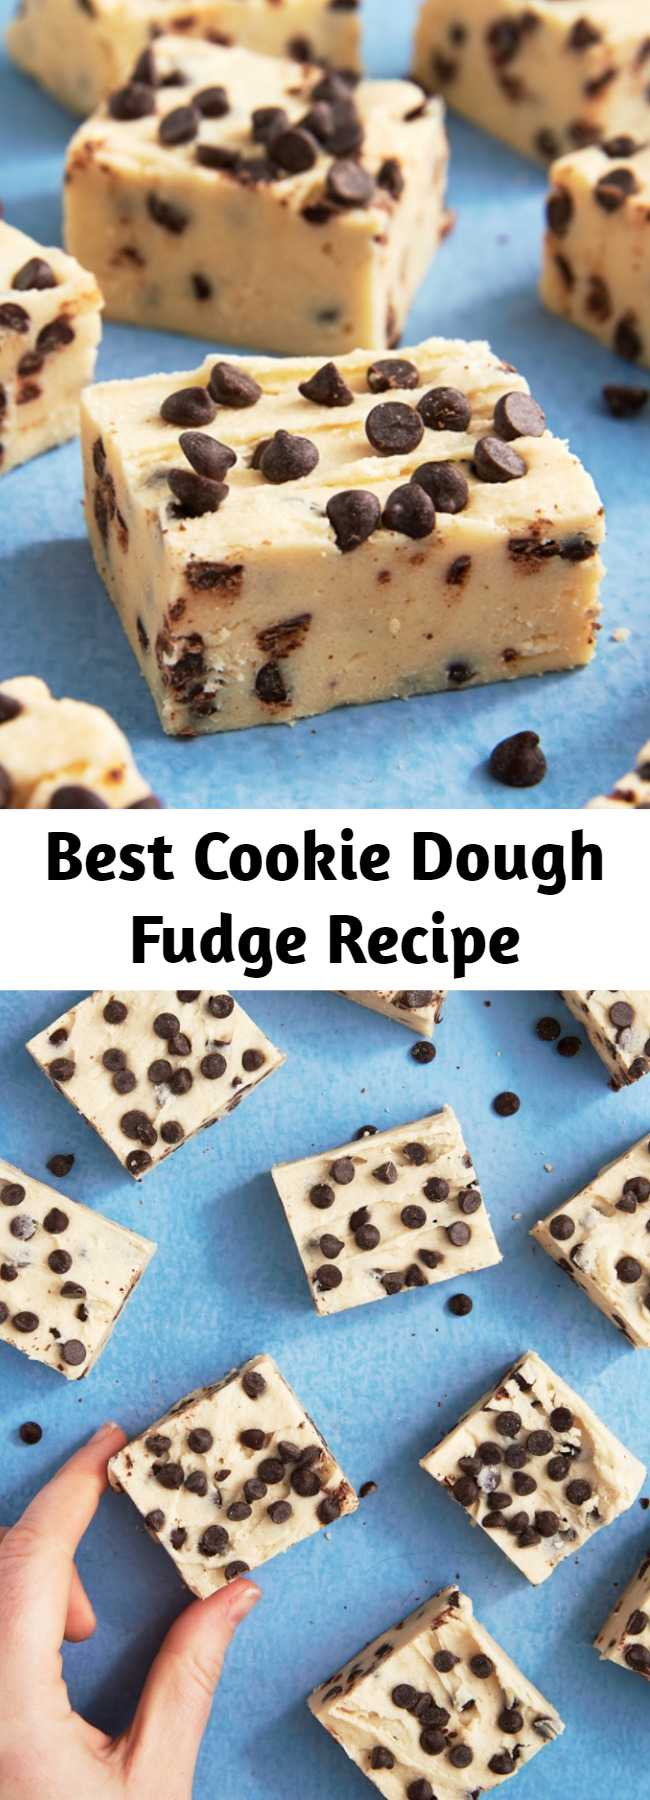 Best Cookie Dough Fudge Recipe - This fudge is for the cookie dough lovers of the world.